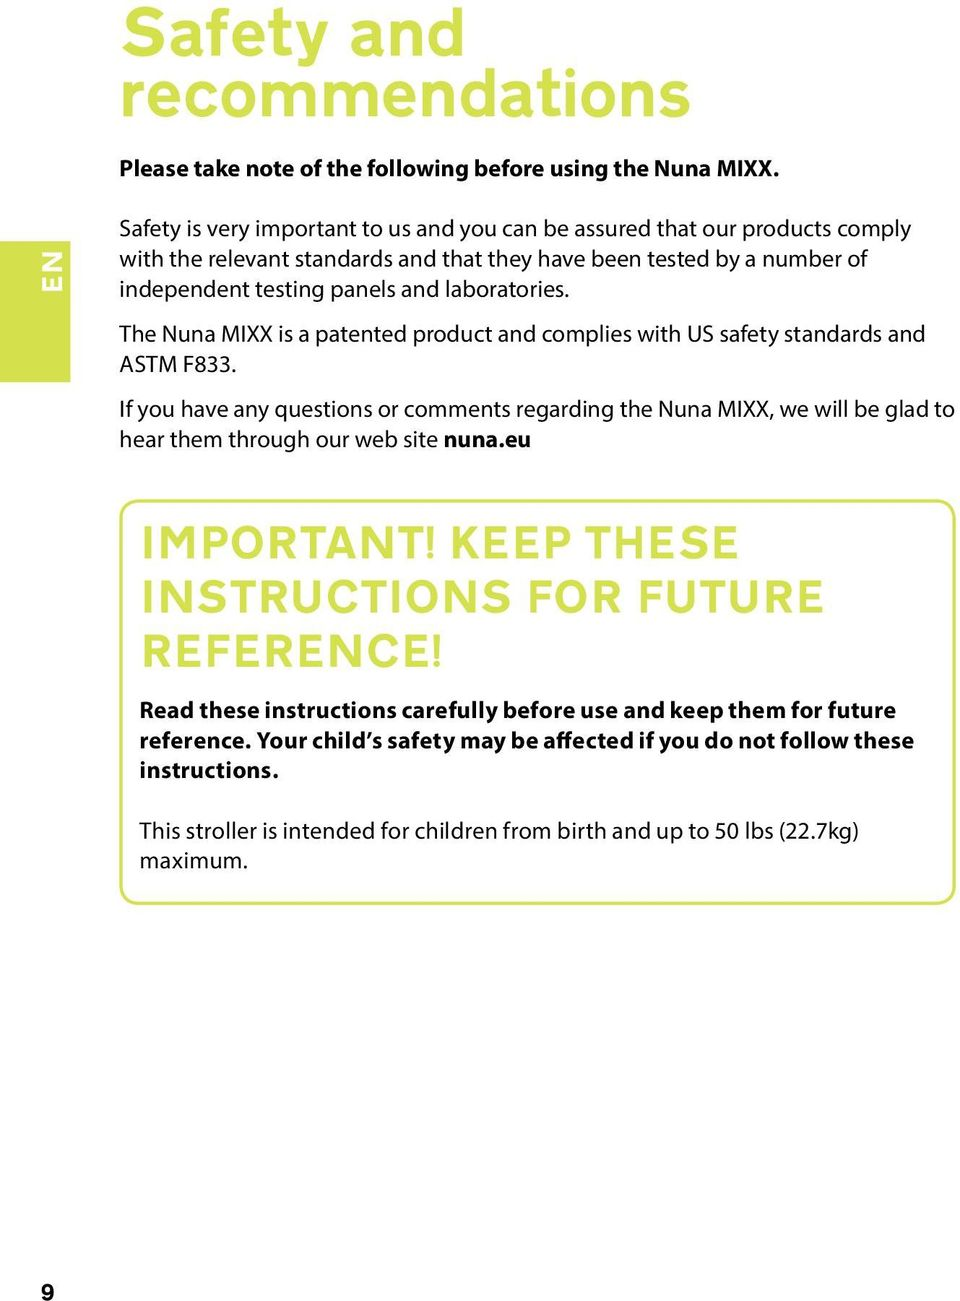 The Nuna MIXX is a patented product and complies with US safety standards and ASTM F833.